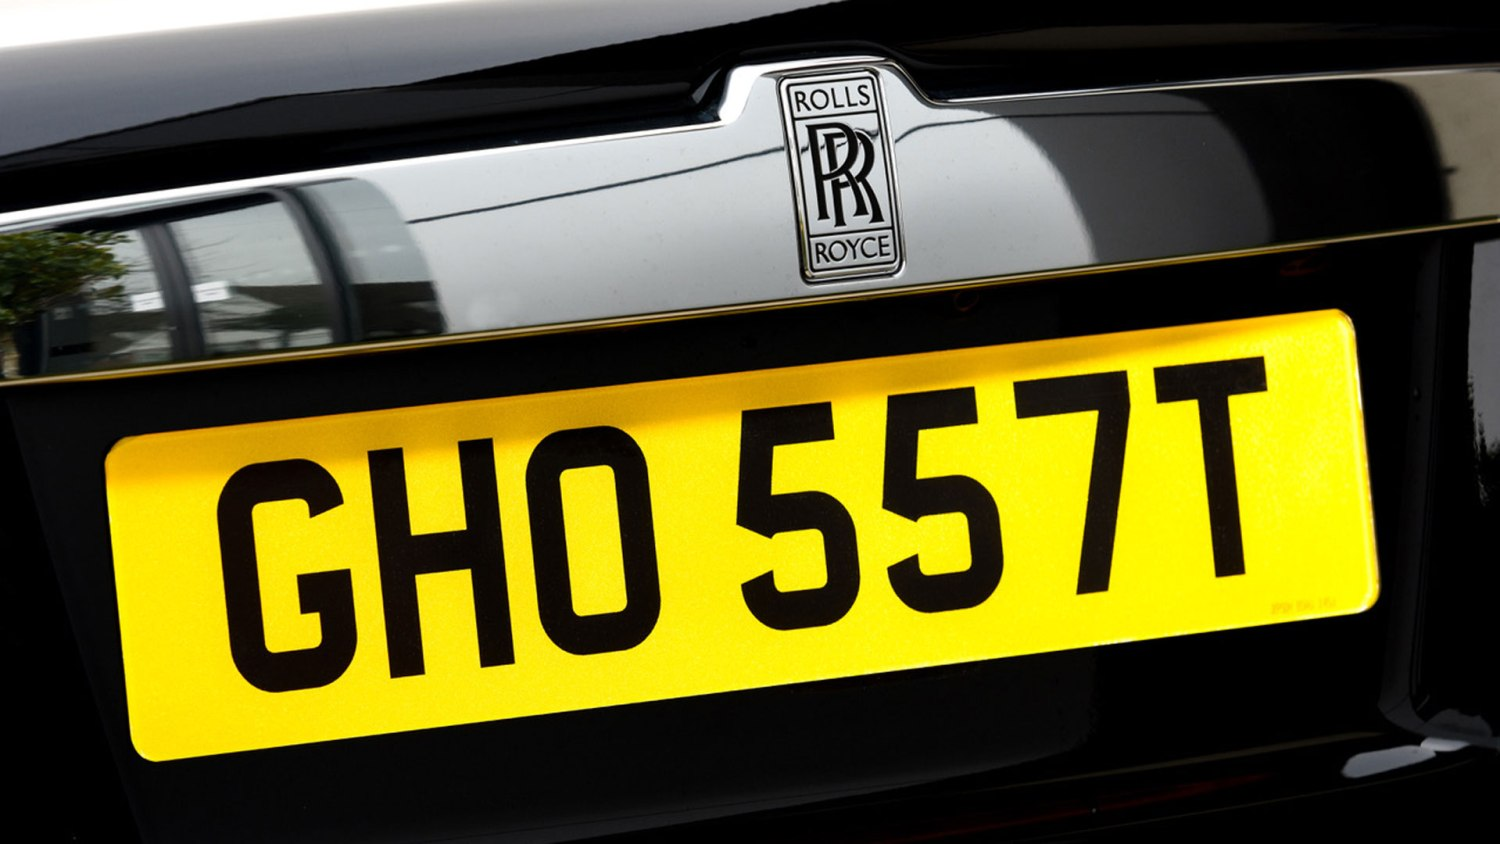 GHO 557T number plate